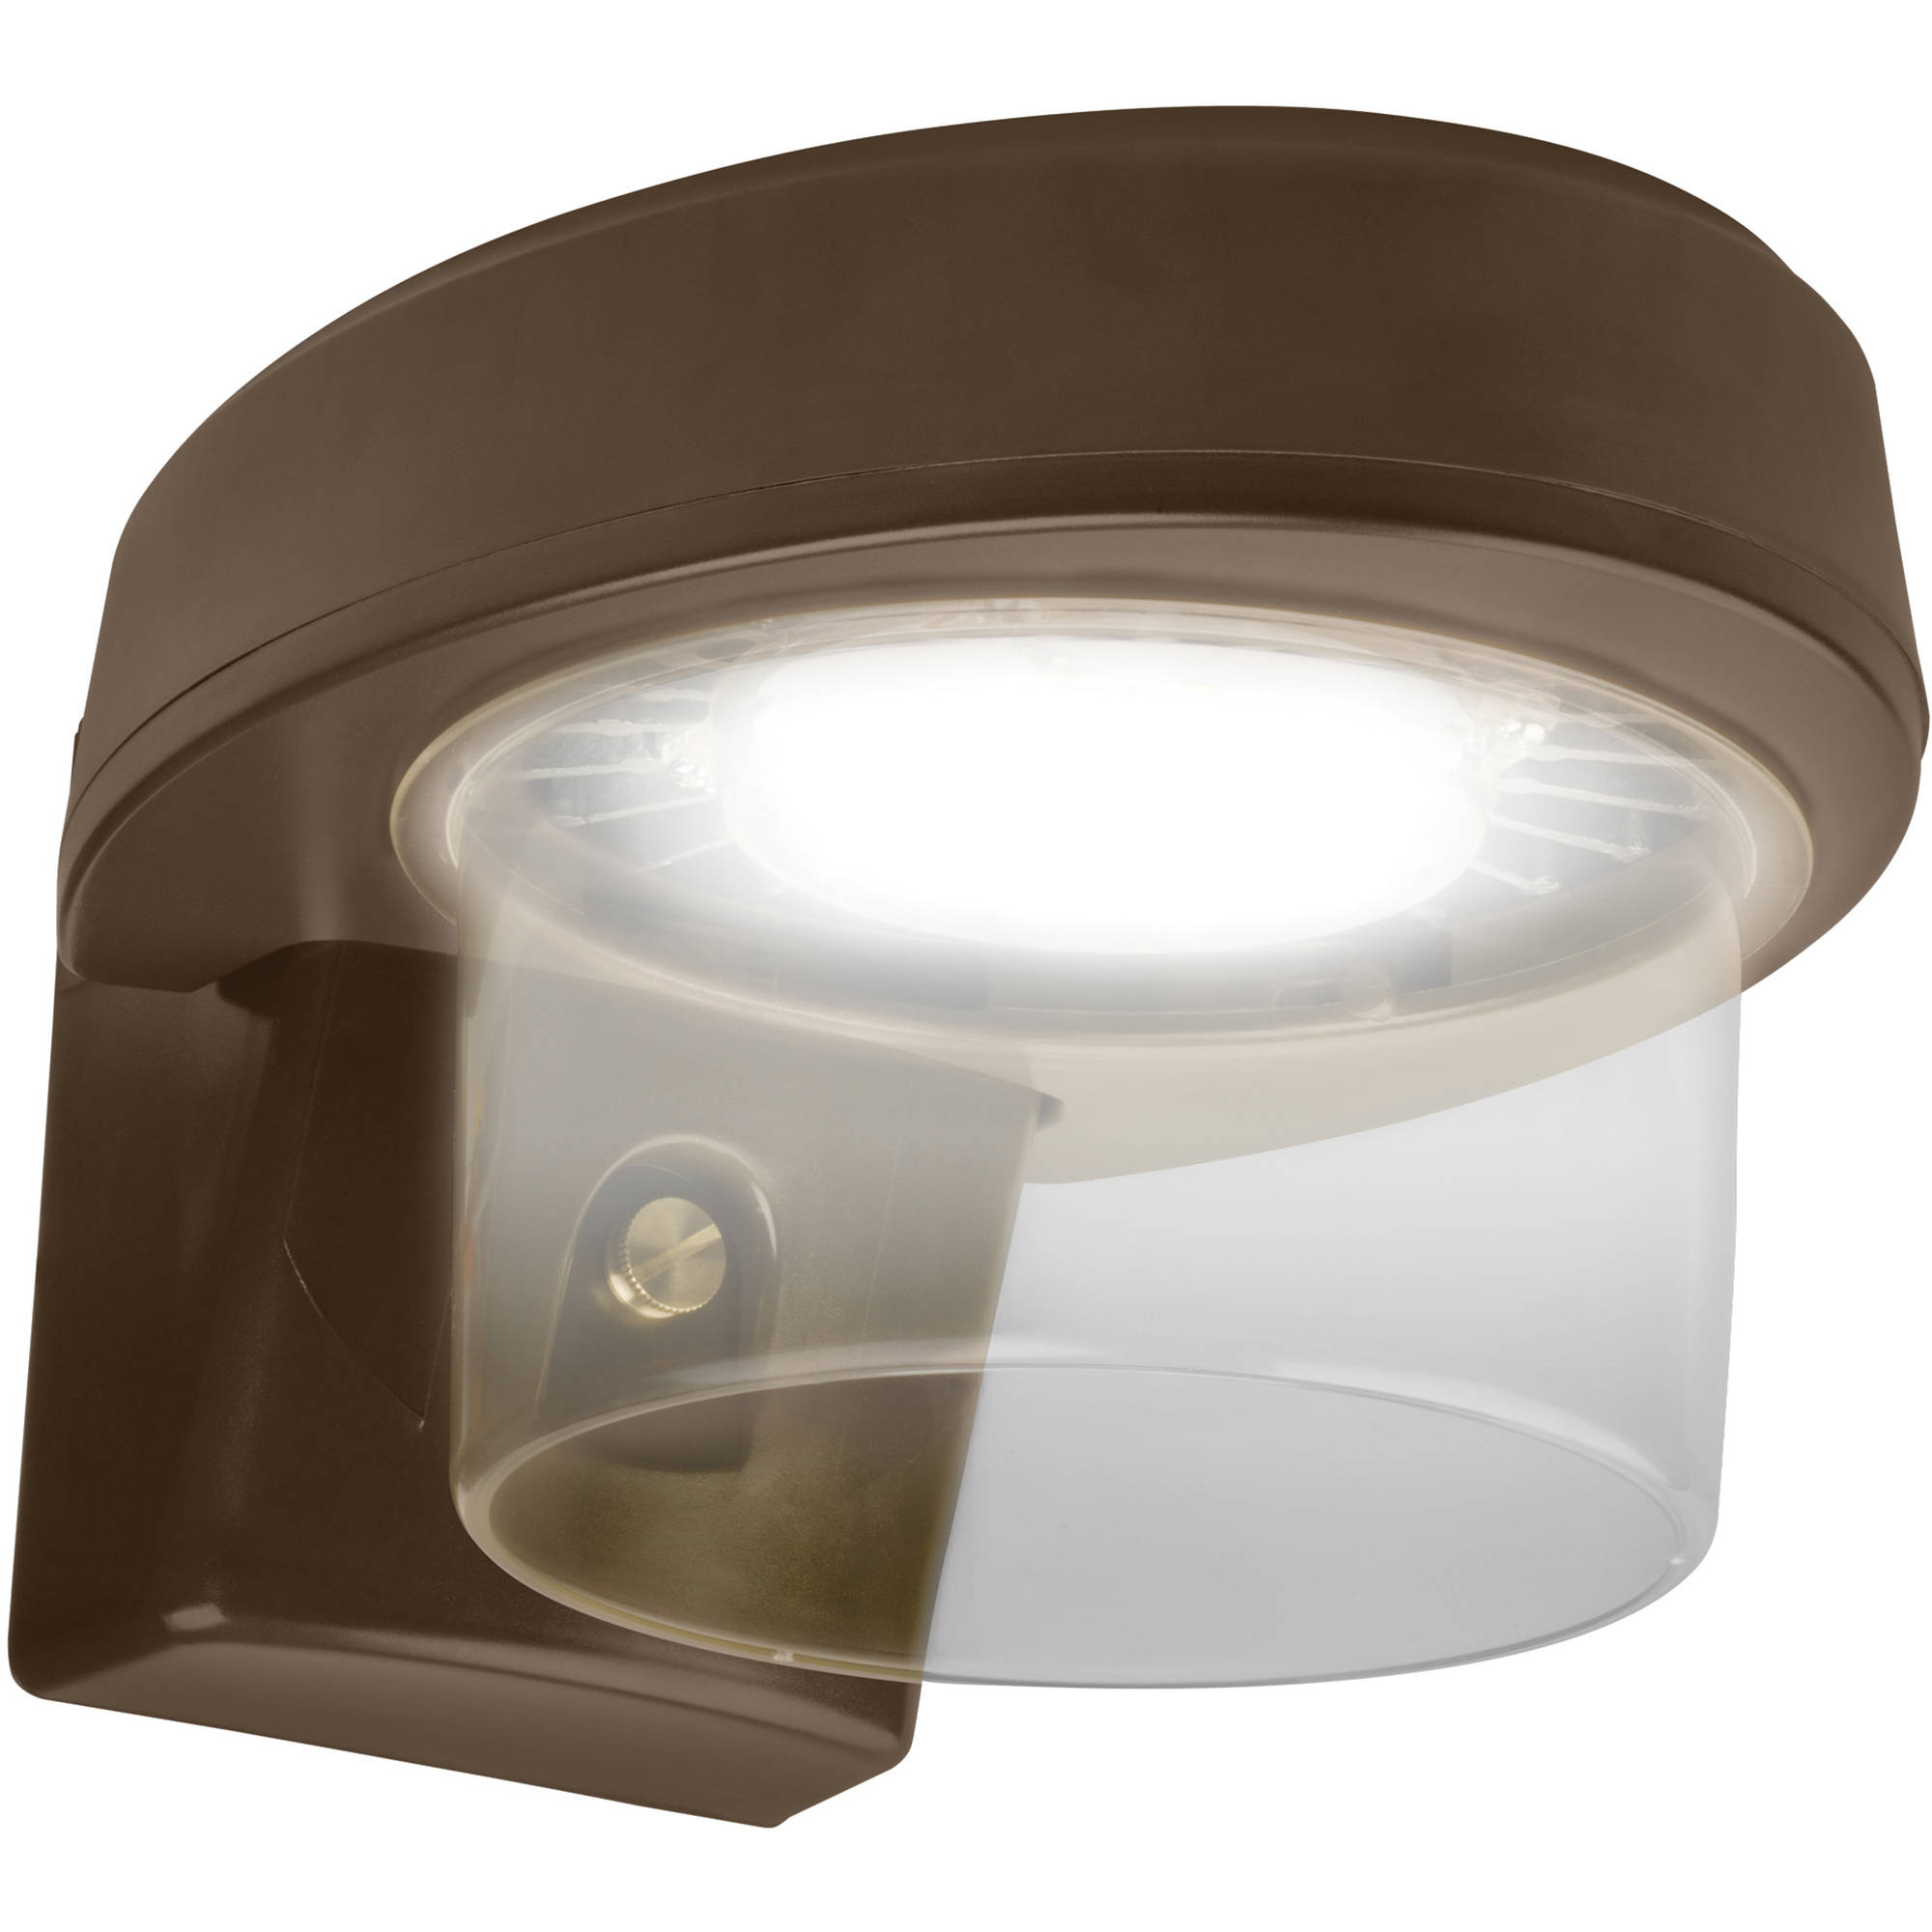 Outdoor Light Battery Battery operated outdoor lights dusk to dawn outdoor designs brinks led dusk to dawn motion activated security light bronze workwithnaturefo